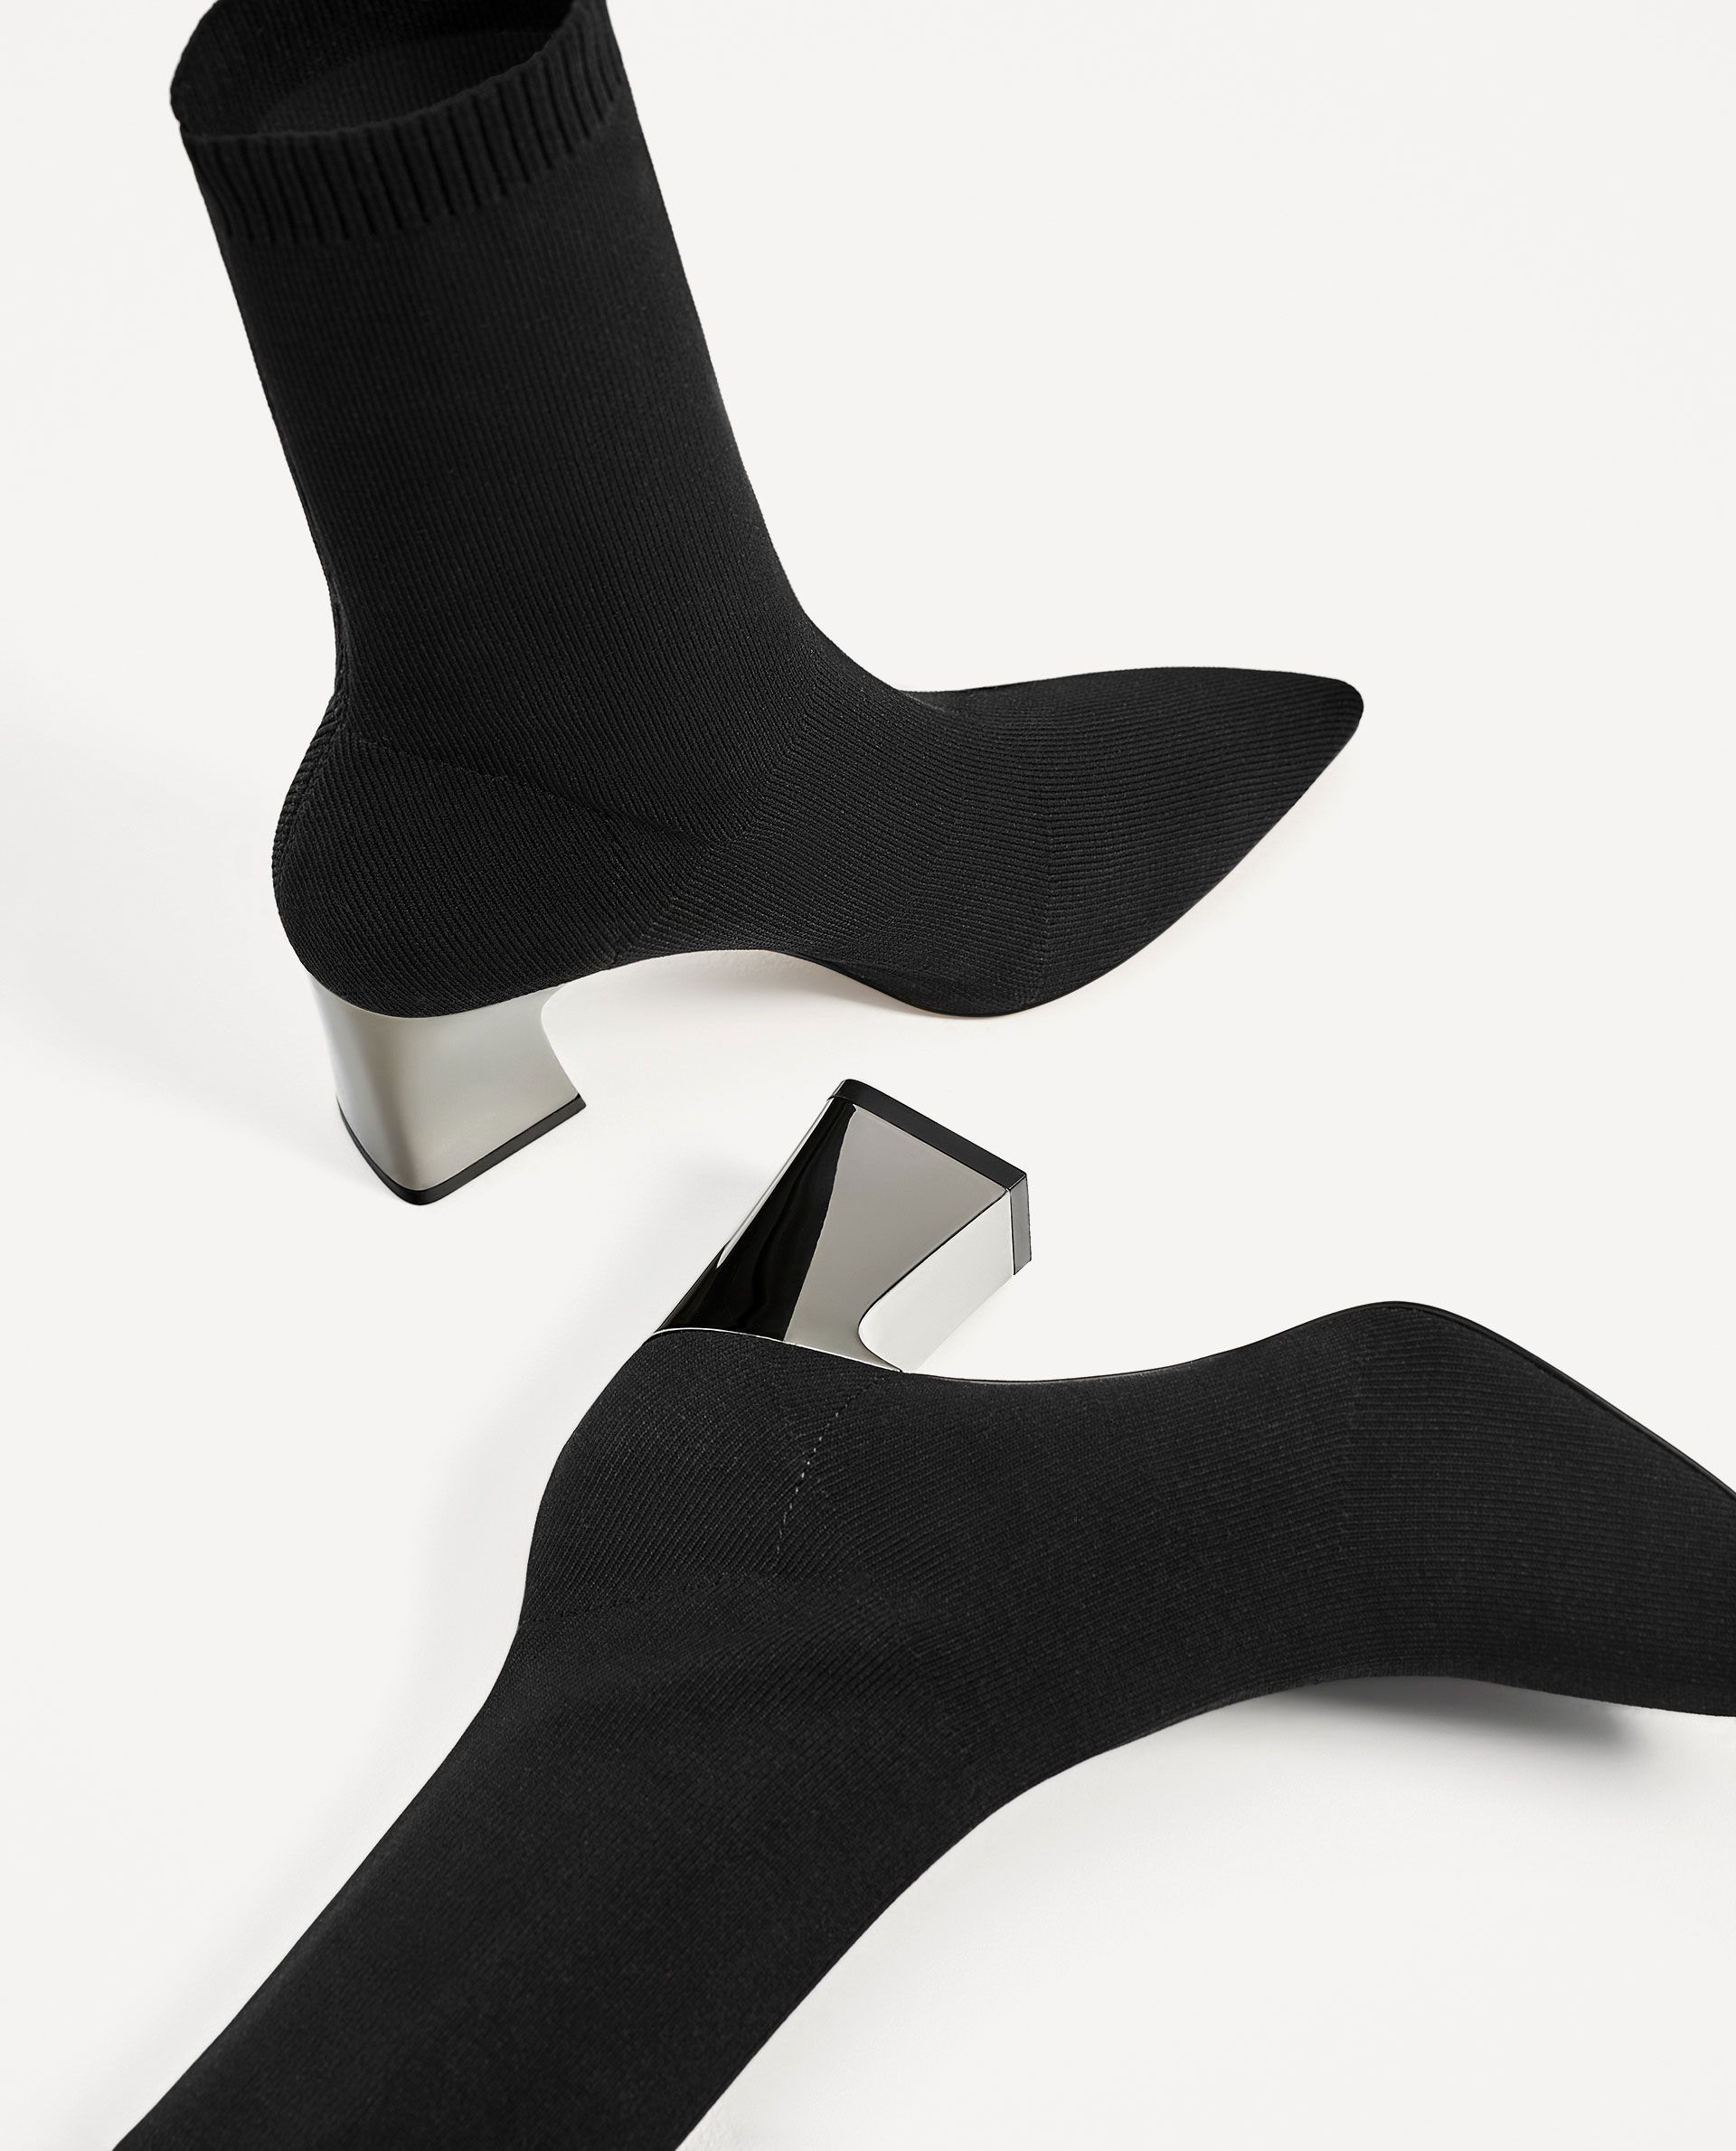 bbdacc10f97 FABRIC HIGH HEEL ANKLE BOOTS WITH STRETCH - NEW IN-WOMAN-COLLECTION AW/17    ZARA